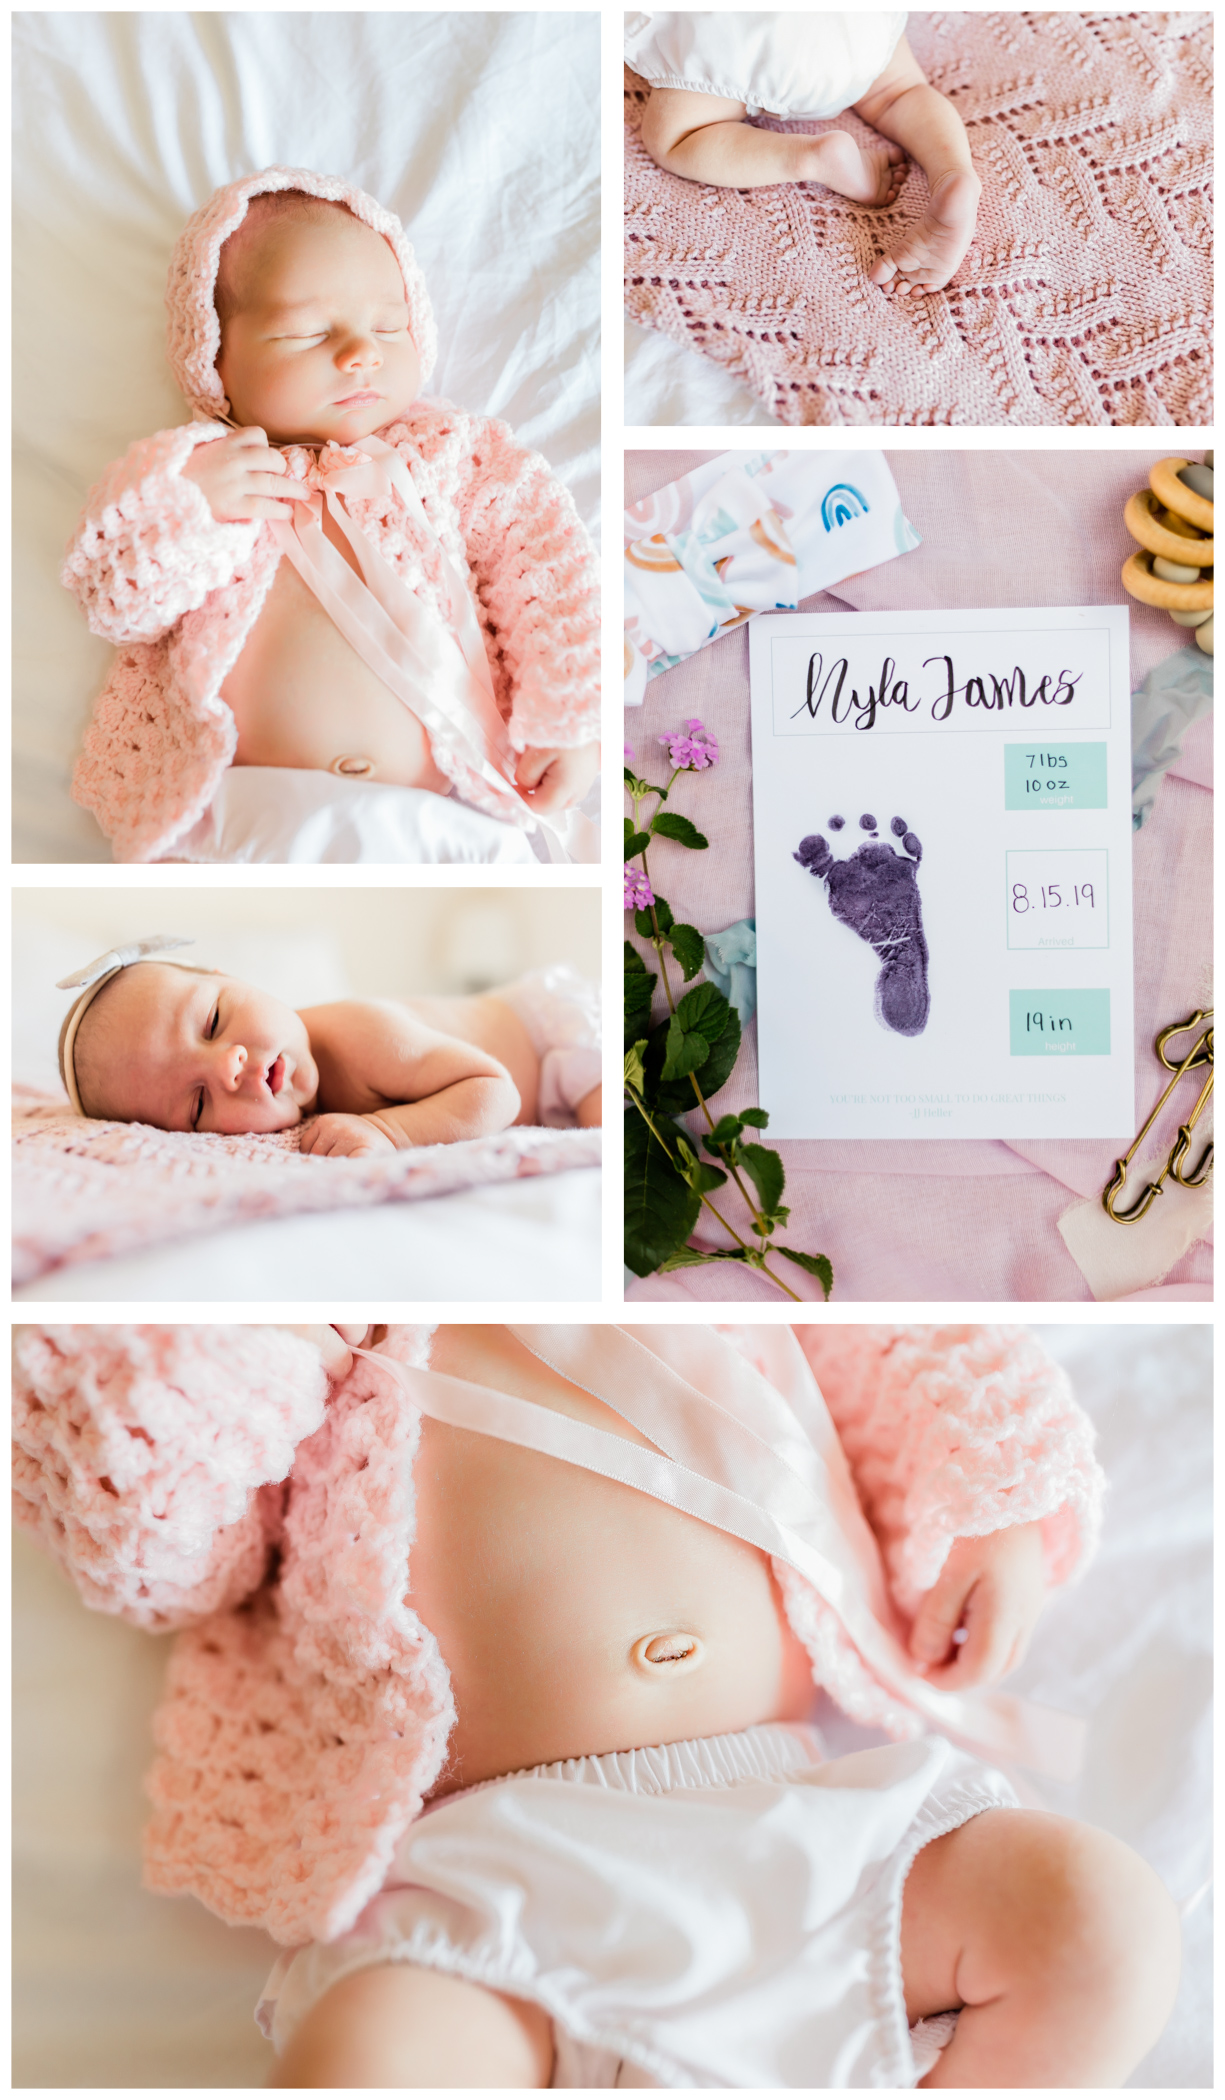 details of newborn girl from newborn lifestyle session